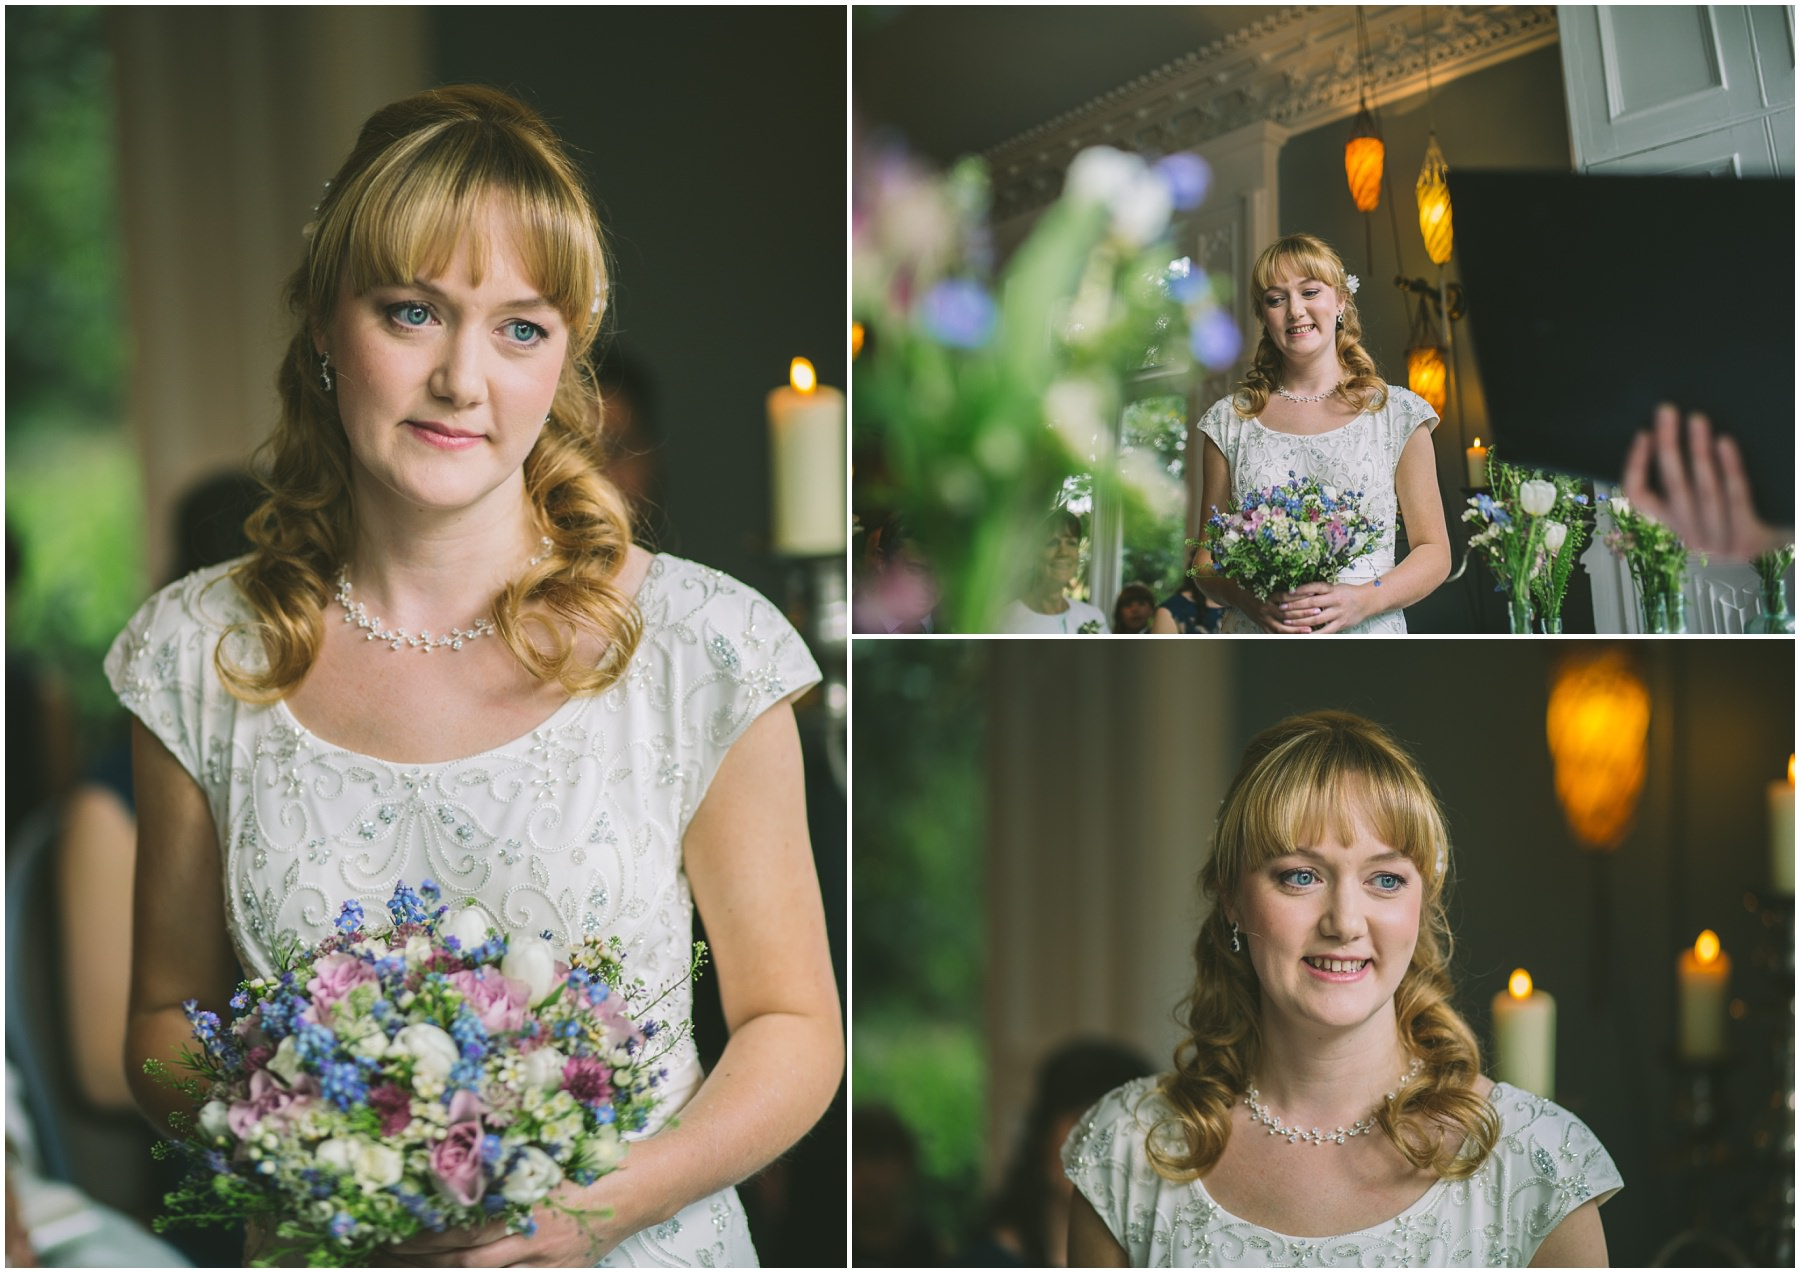 Bride during the wedding ceremony at Didsbury House